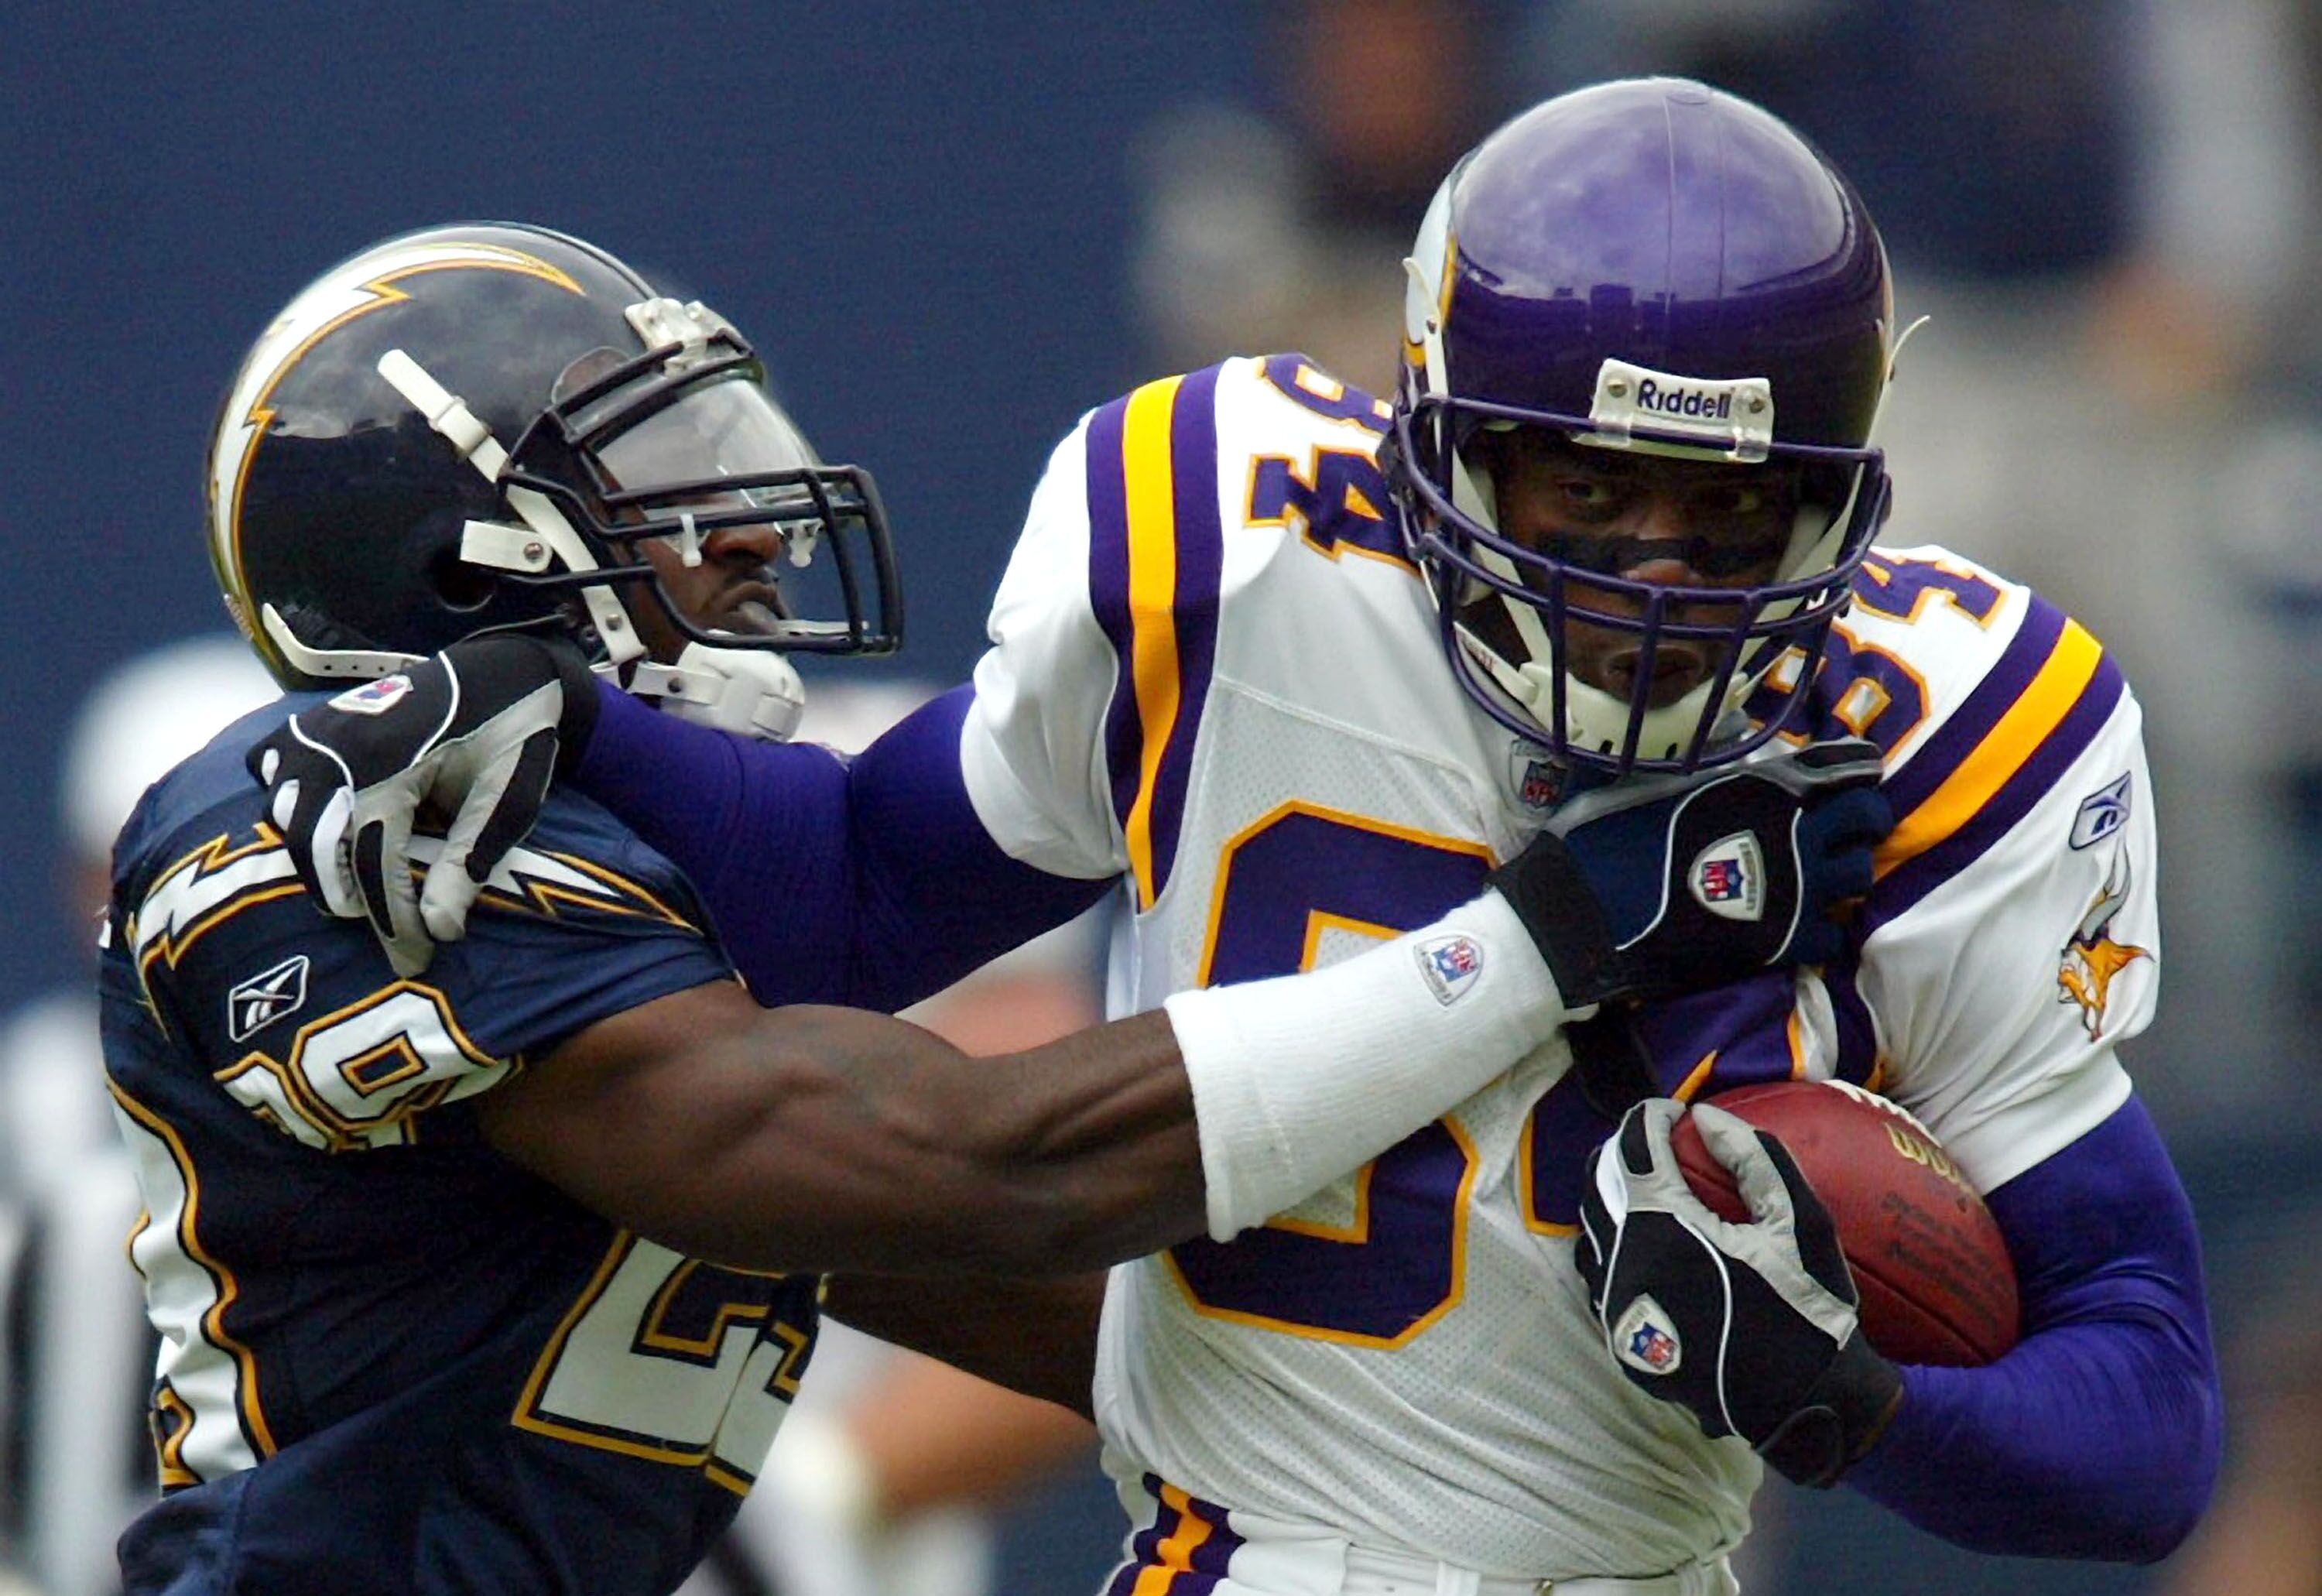 babc1bb98dcddf Randy Moss will be attending the Vikings game this week